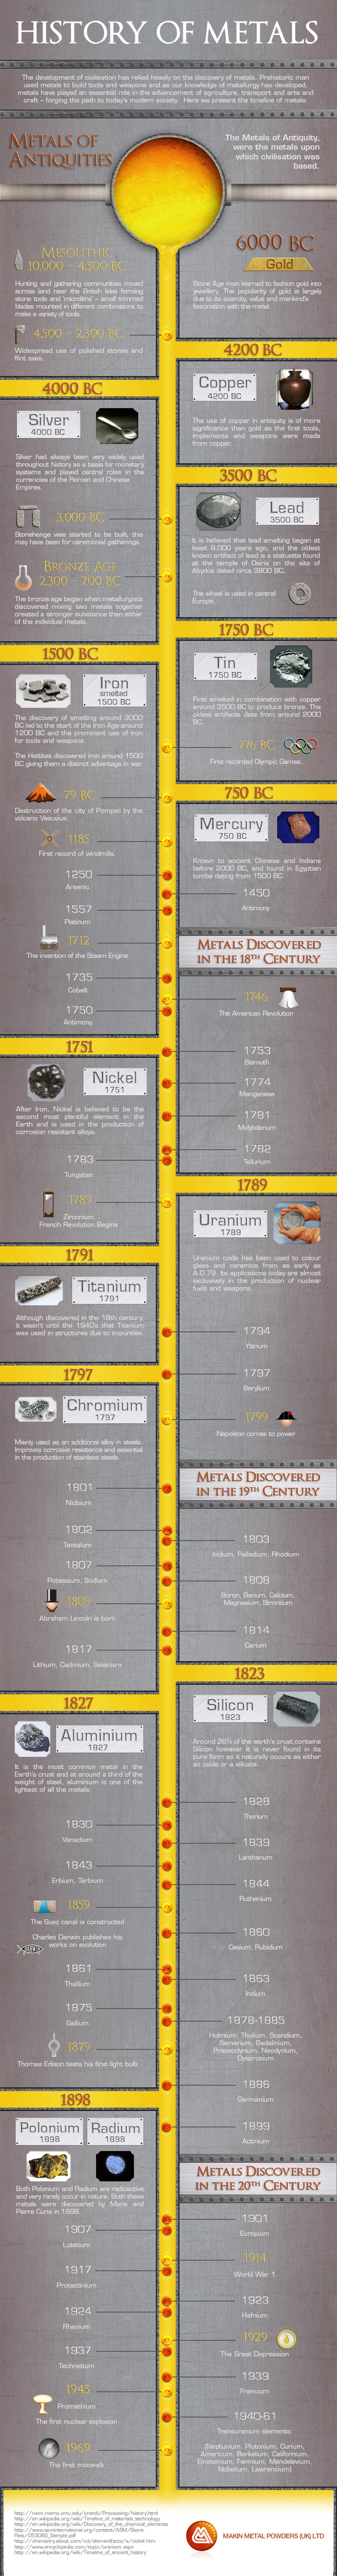 History of Metals - Timeline Infographic #copper #bronze #iron